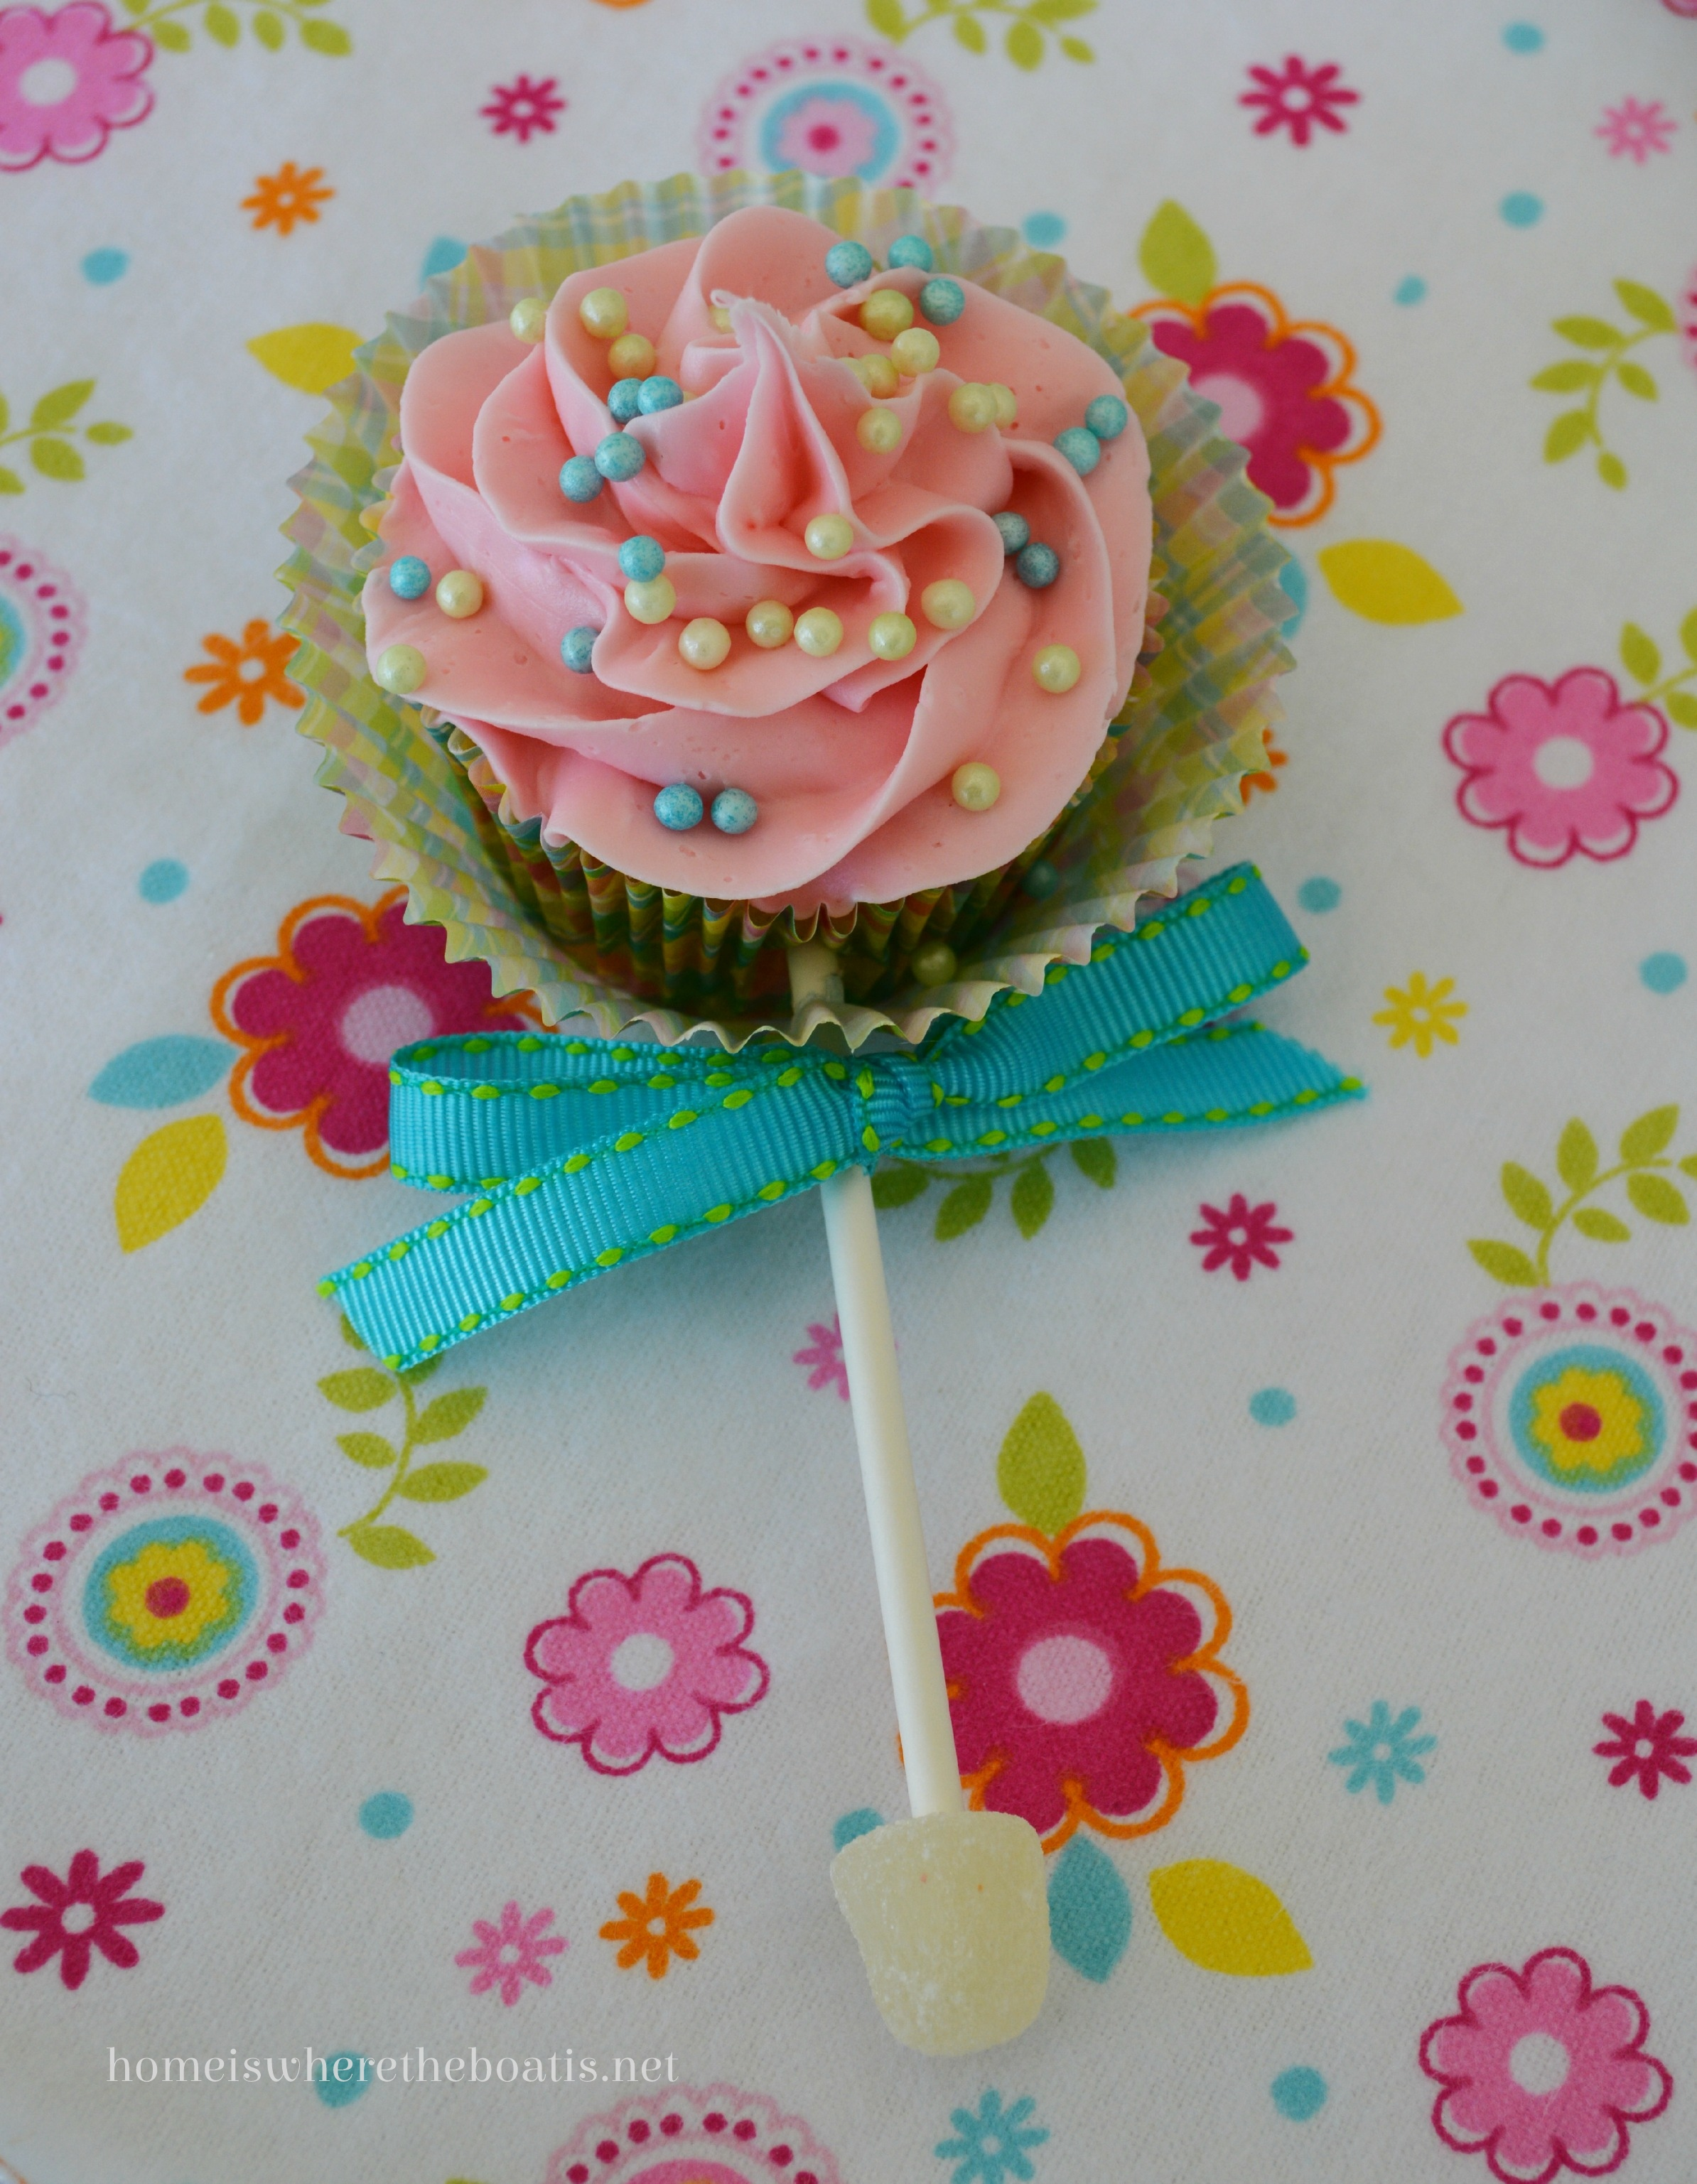 Baby Rattle Cake Decoration : Baby Rattle Cupcakes   Home is Where the Boat Is